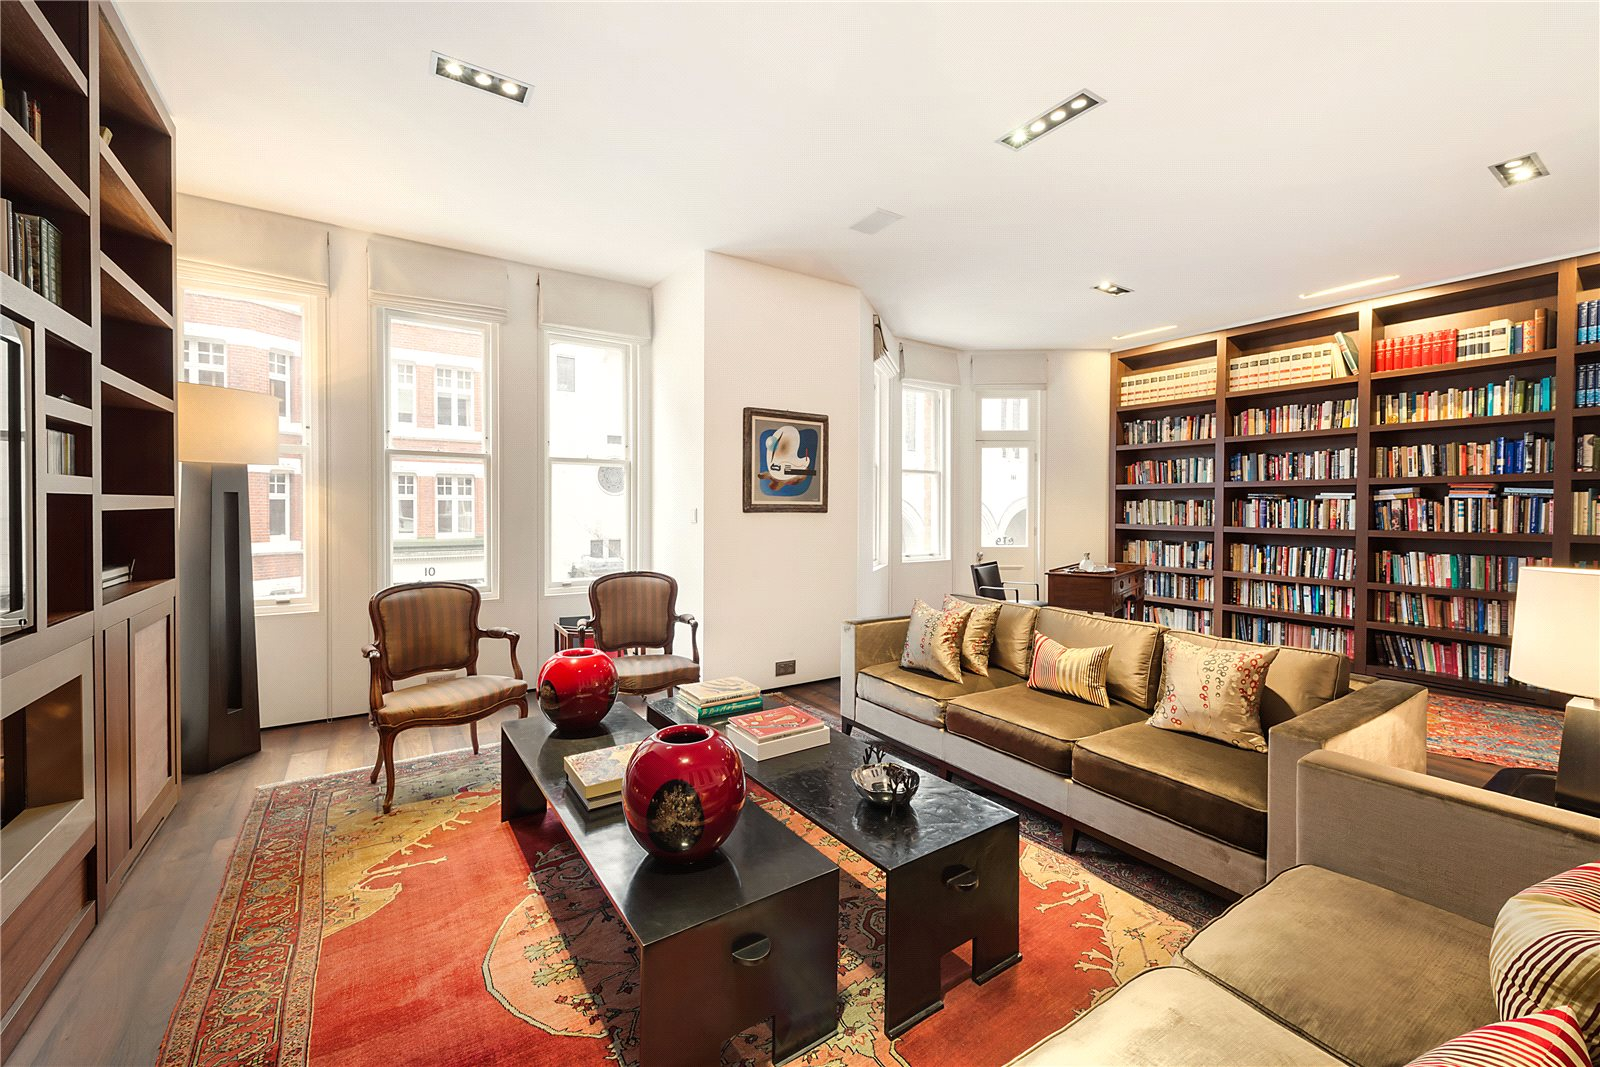 Apartments / Residences for Sale at Wilbraham Place, Knightsbridge, London, SW1X Knightsbridge, London, England